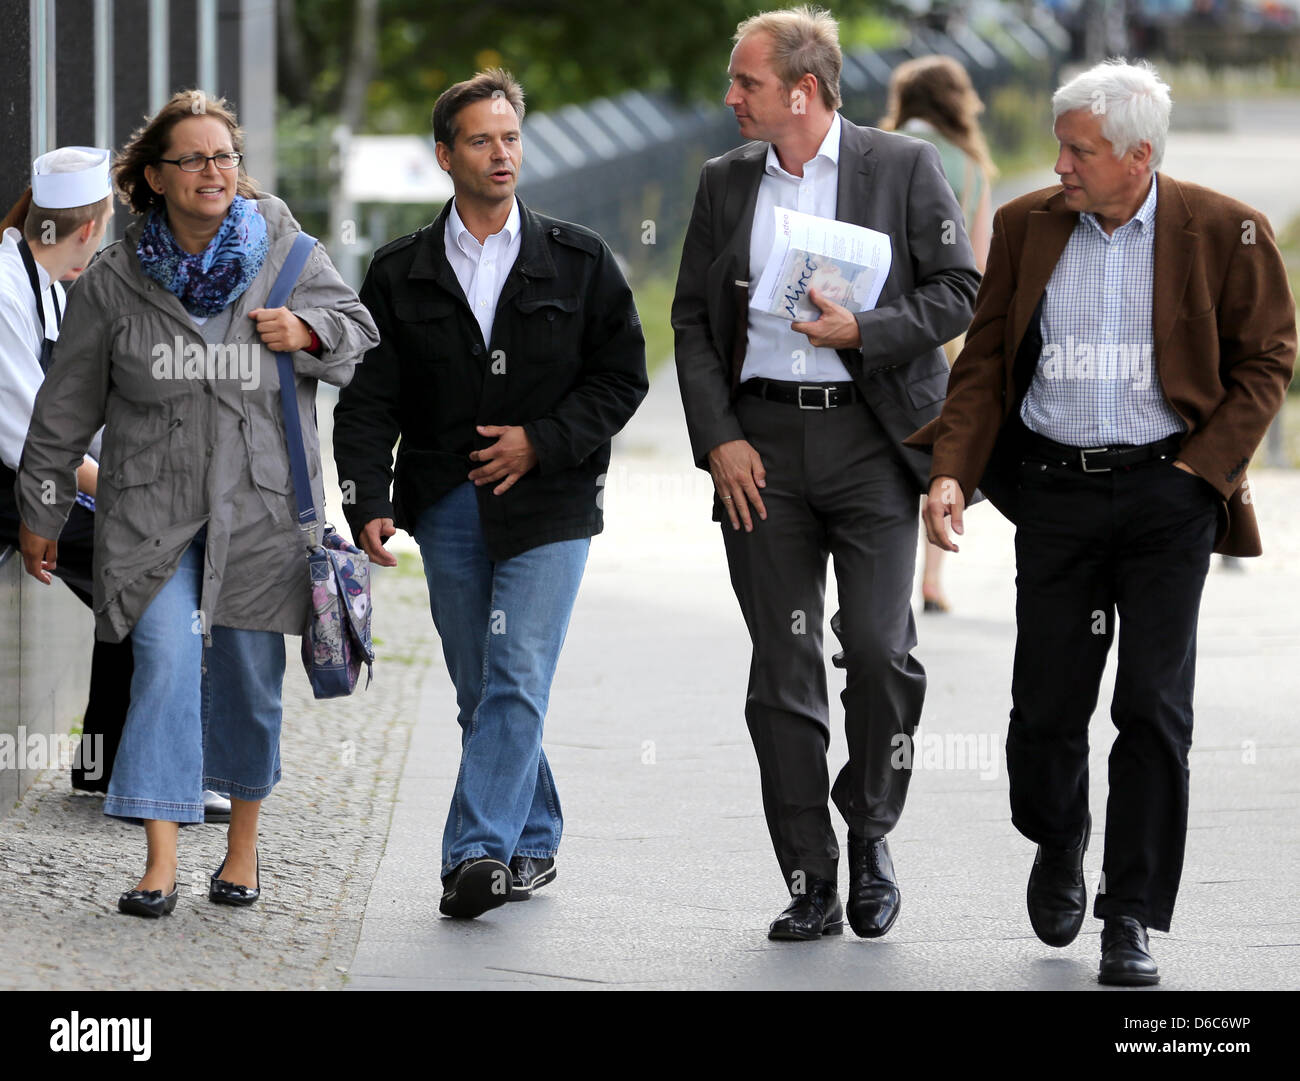 The parents of ten-year-old Mirco from Grefrath, who was murdered two years ago, Sandra und Reinhard Schlitter (L), - Stock Image